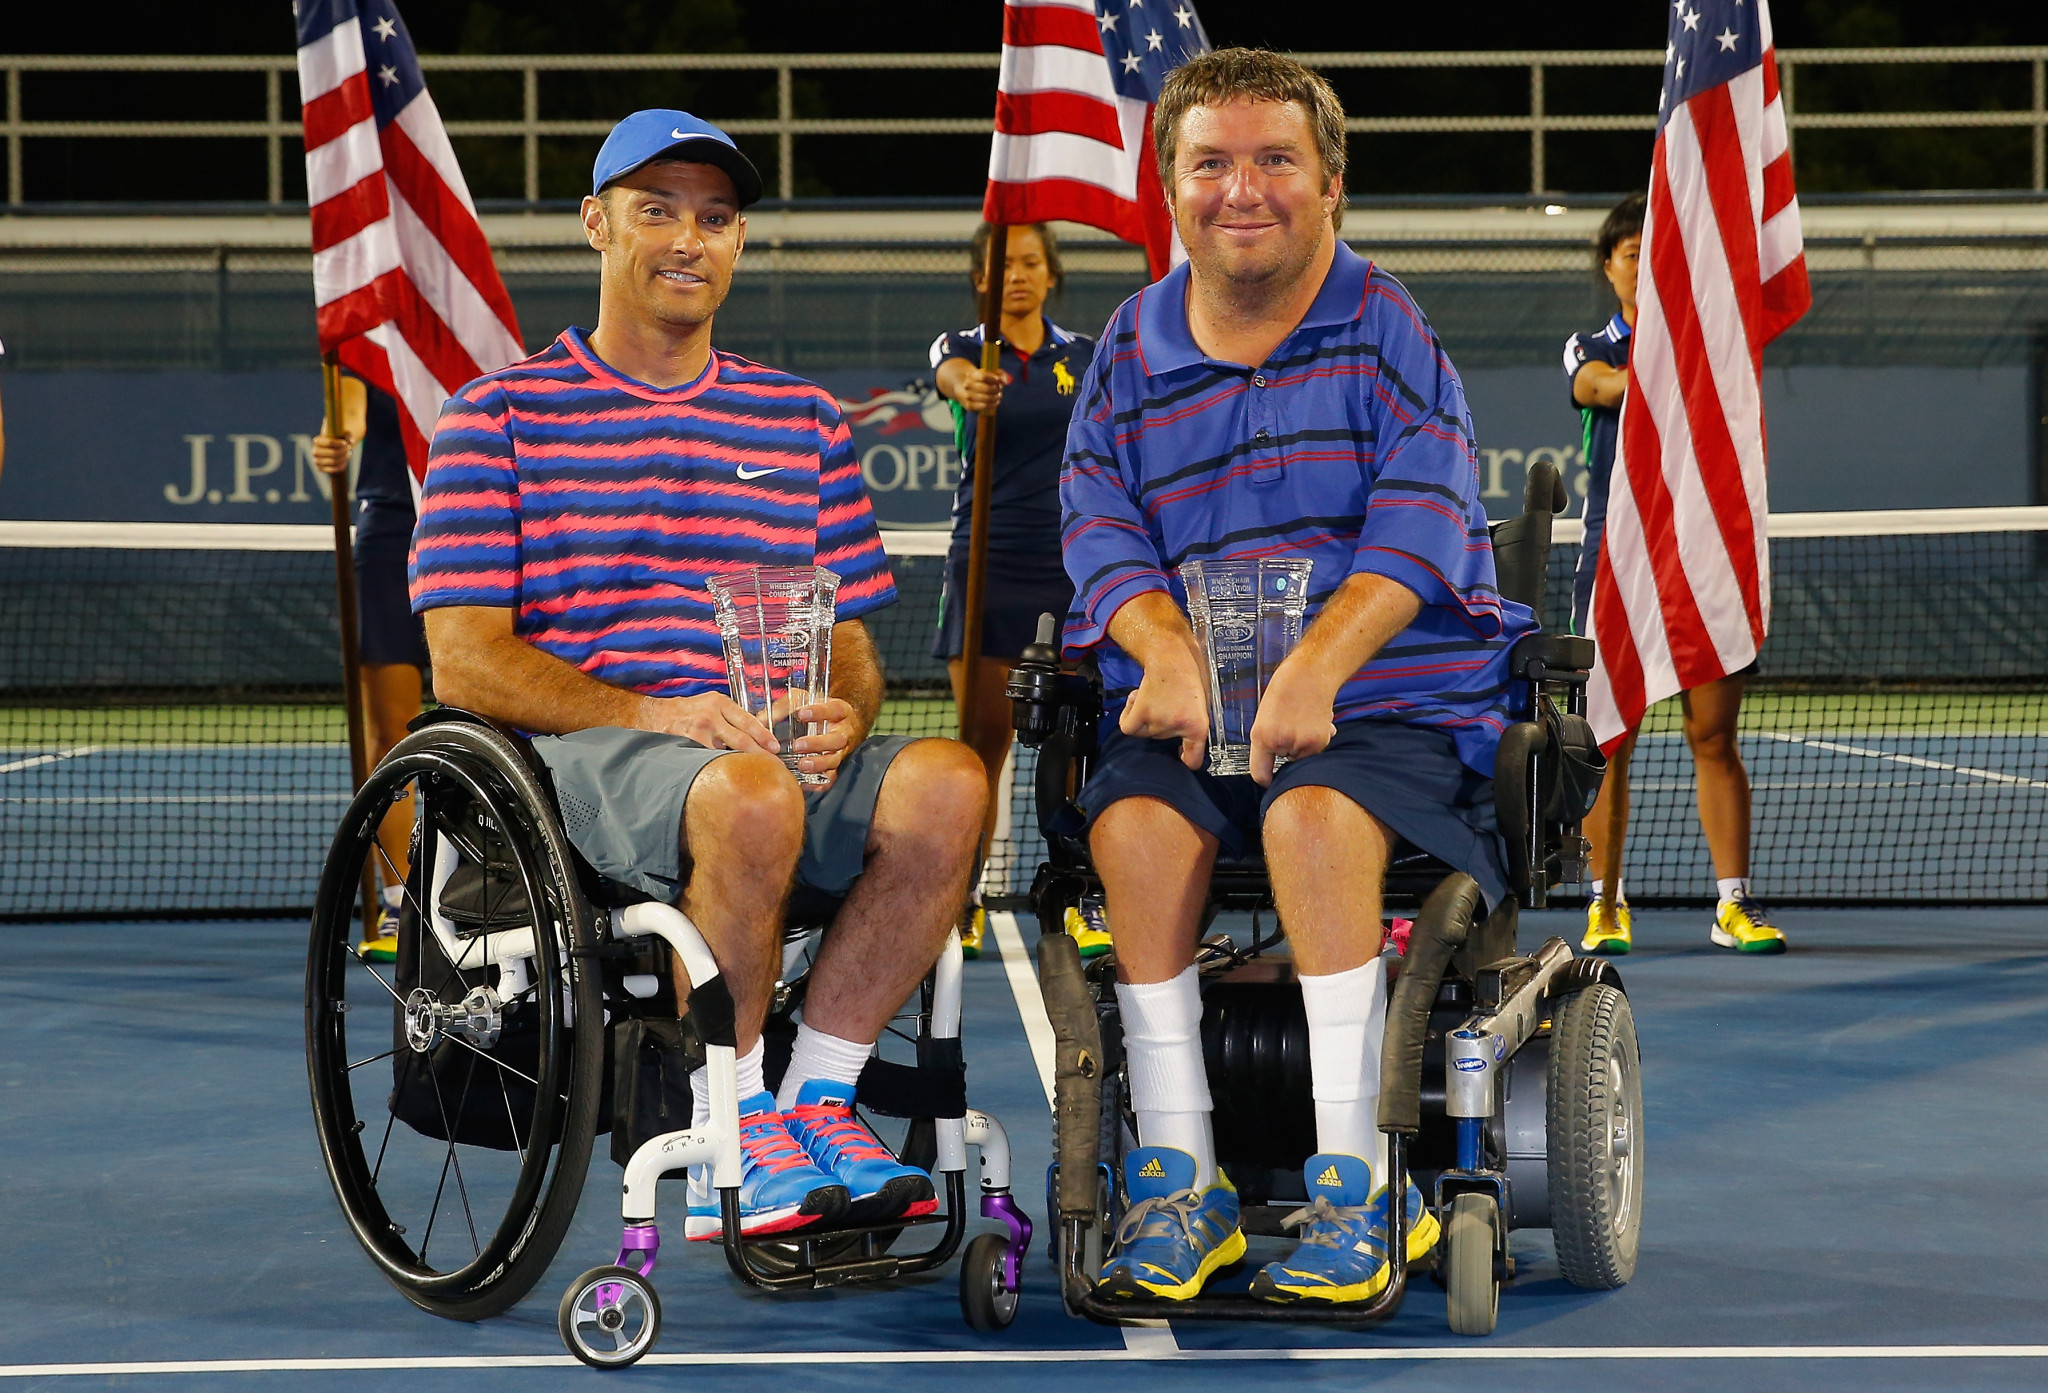 Taylor and Wagner seal opening win in defence of Wheelchair Doubles Masters title